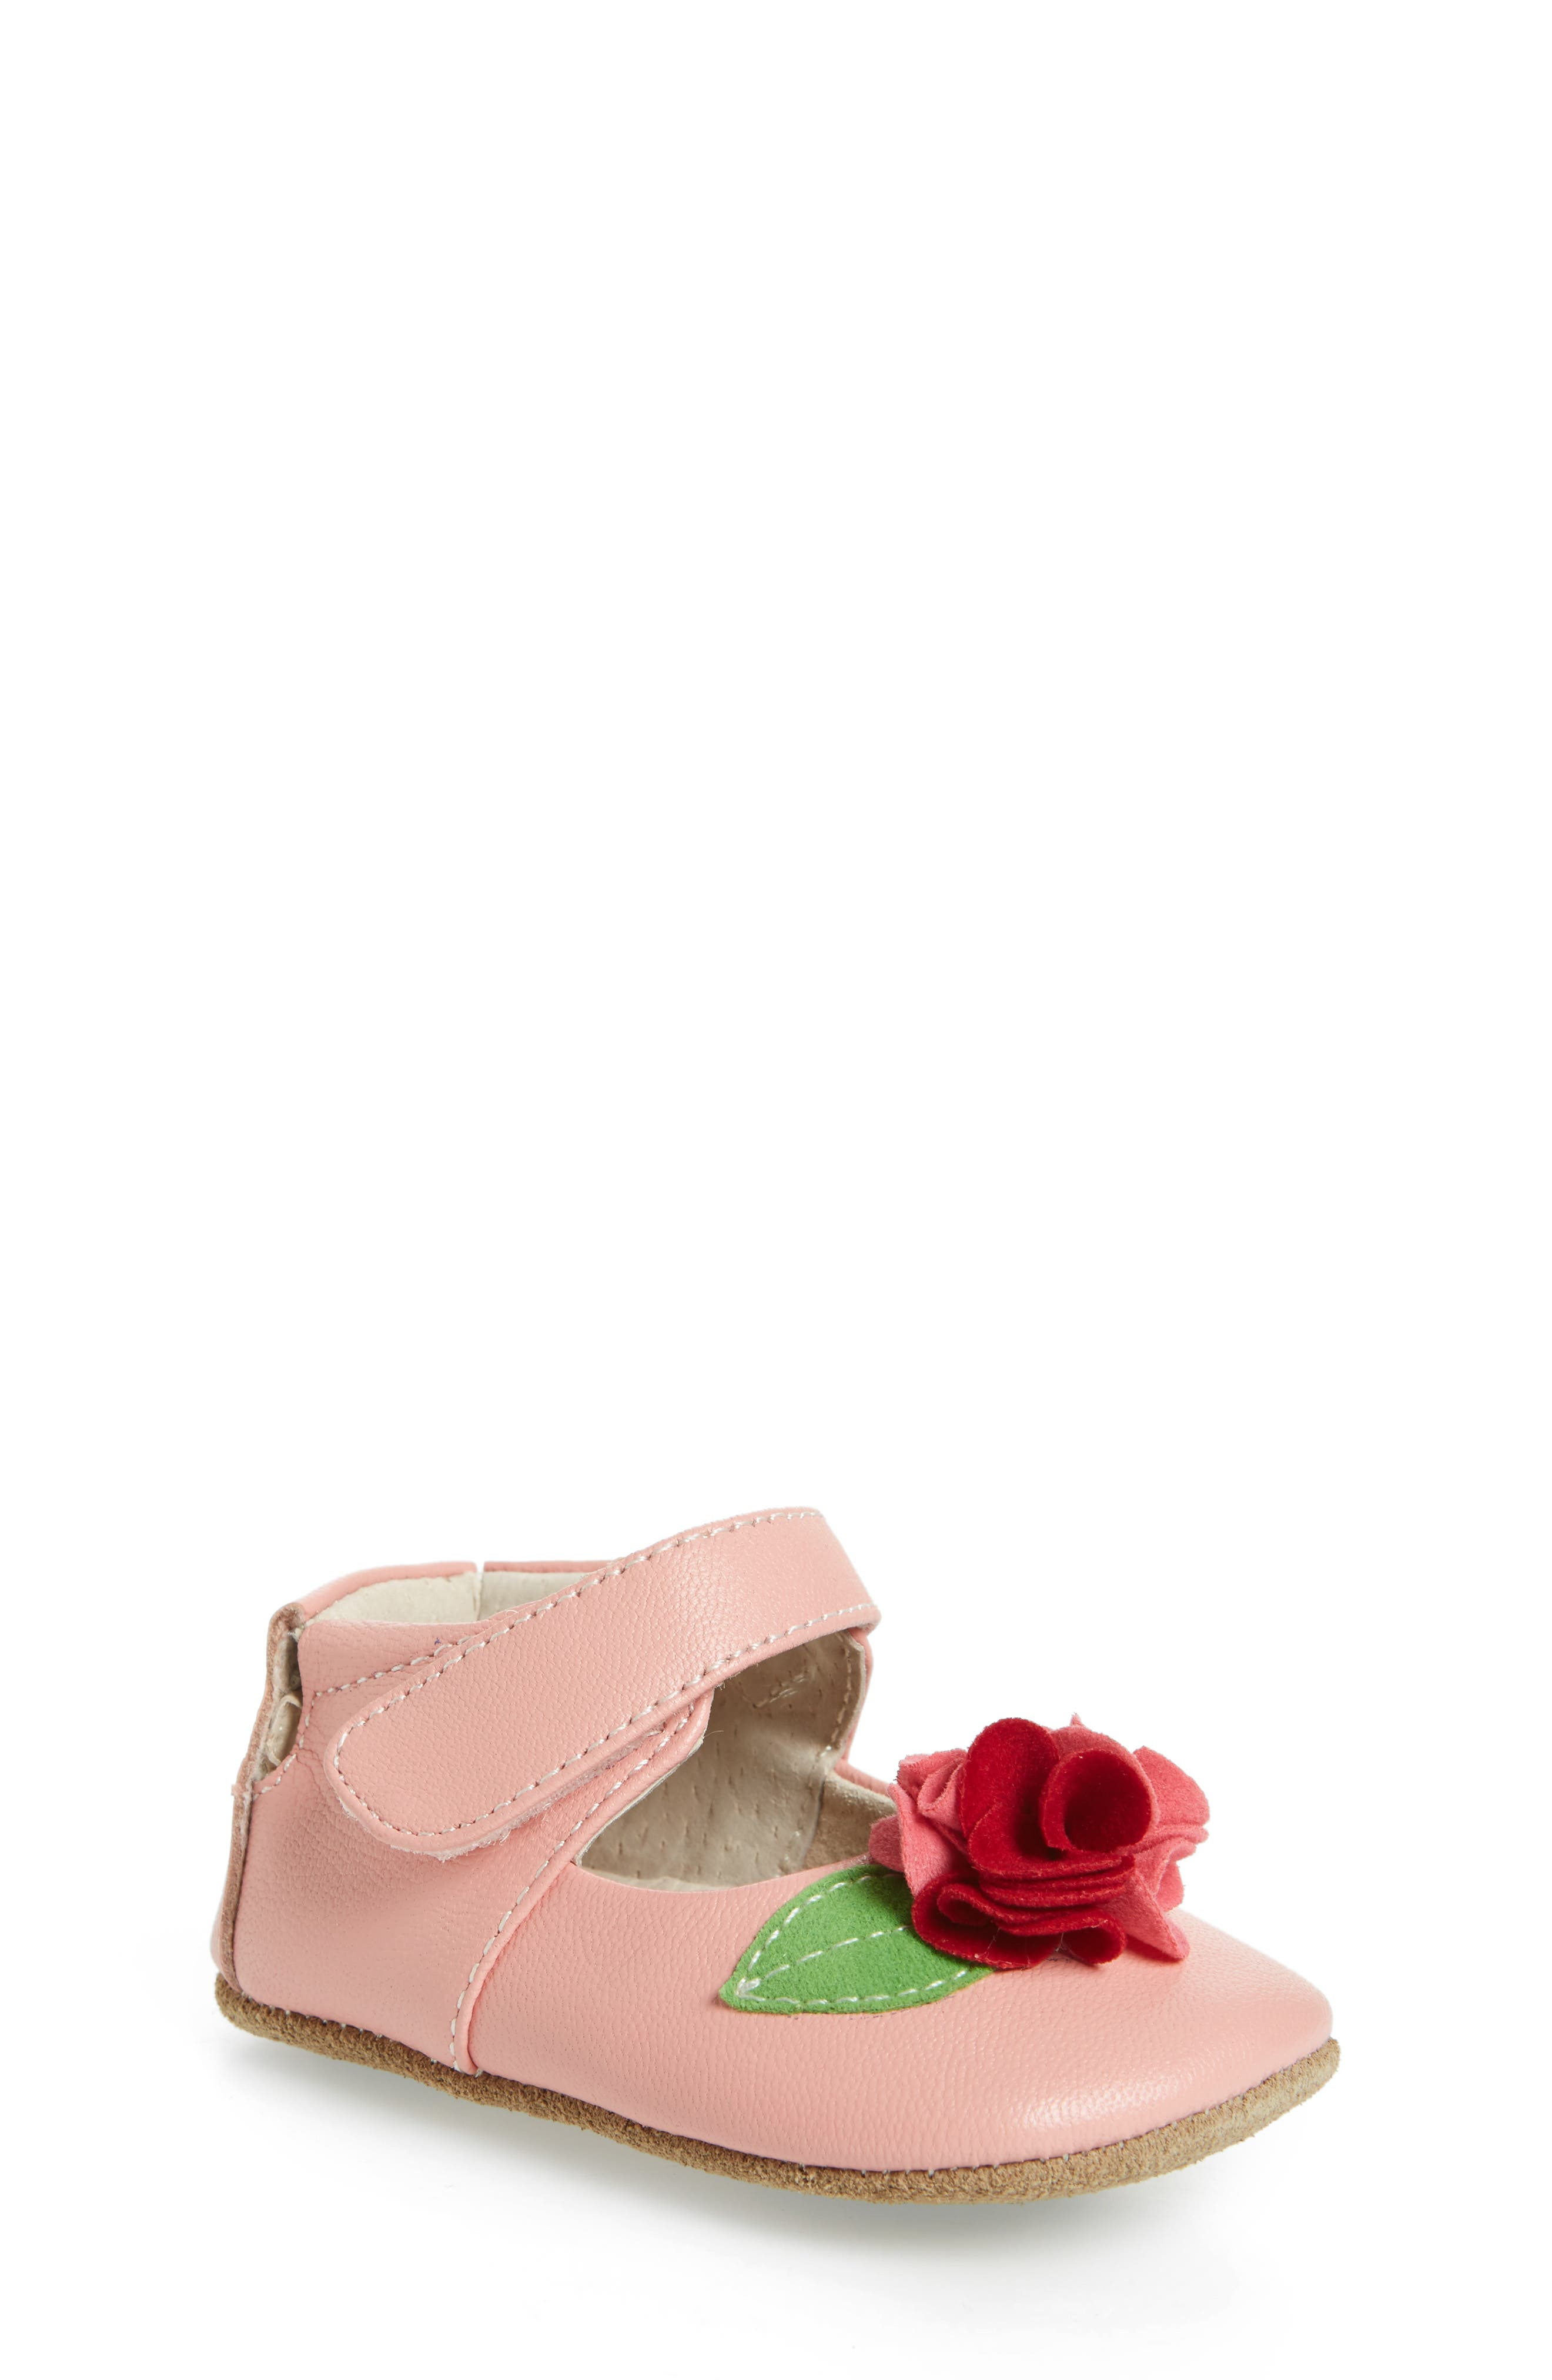 Rosa Mary Jane Crib Shoe,                         Main,                         color, Light Pink